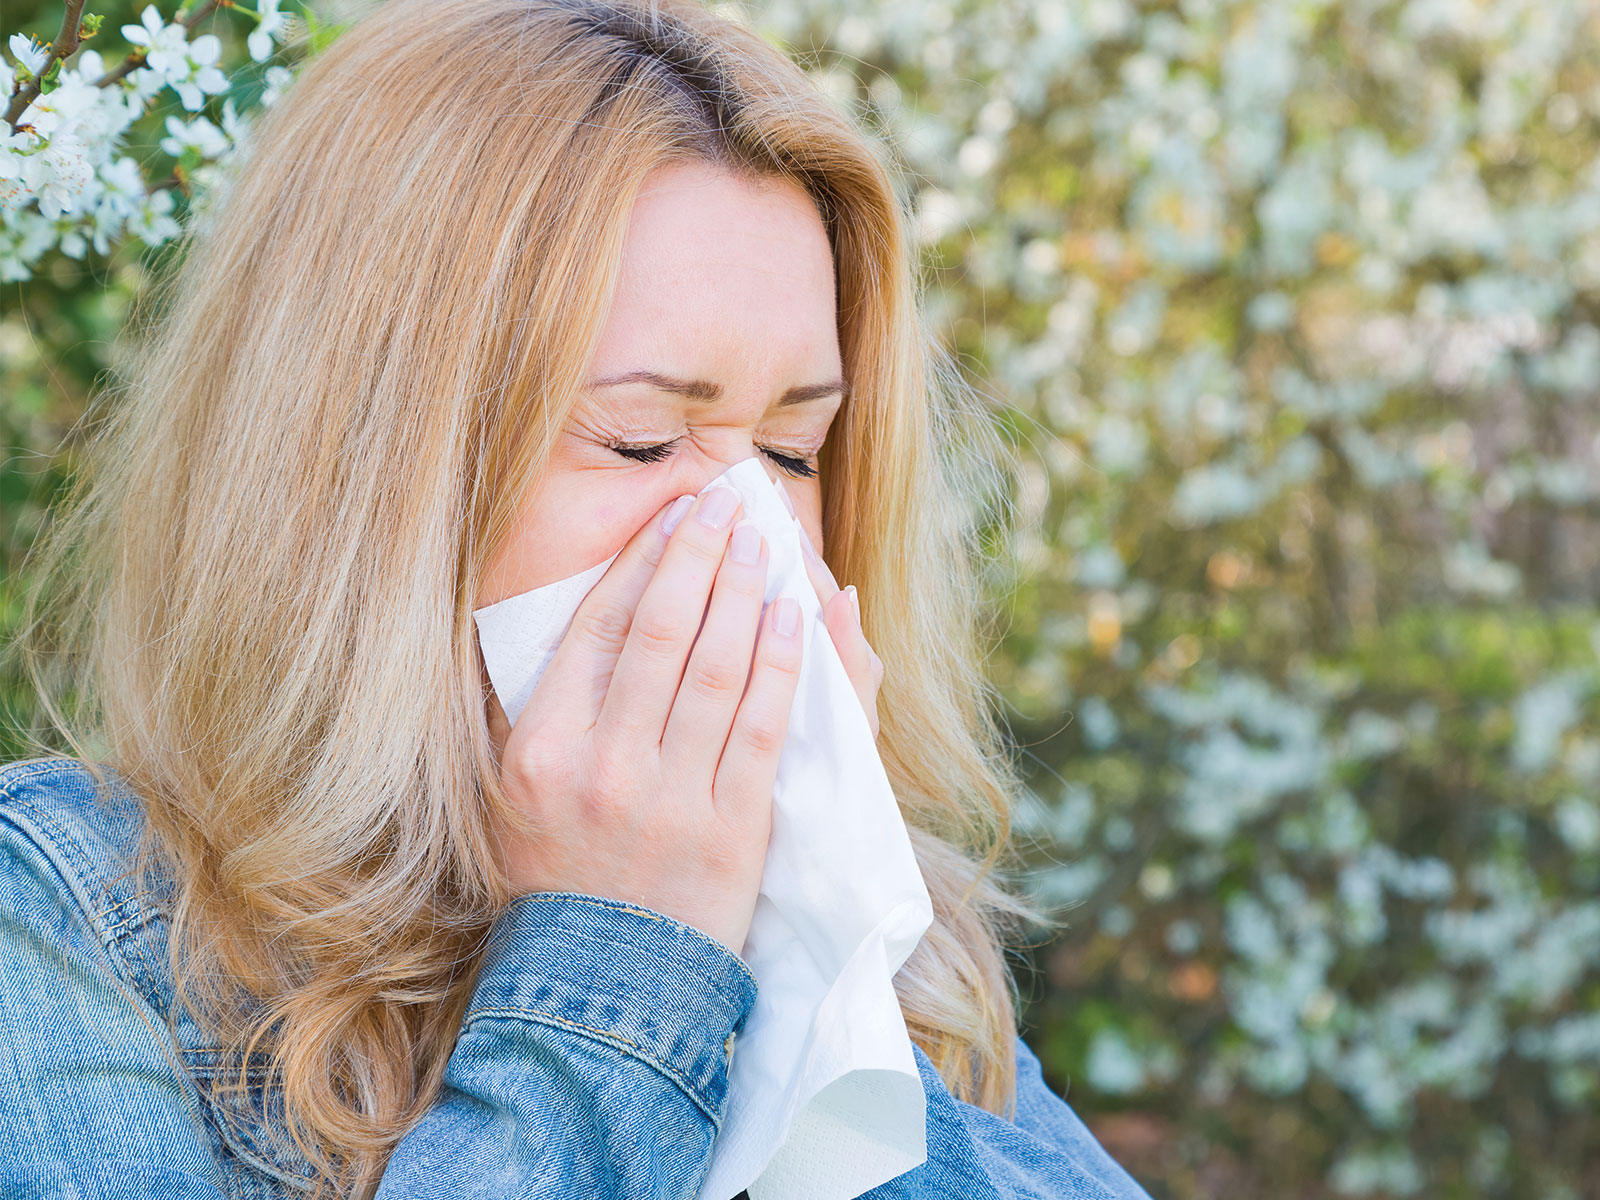 A woman standing outside sneezes into a tissue